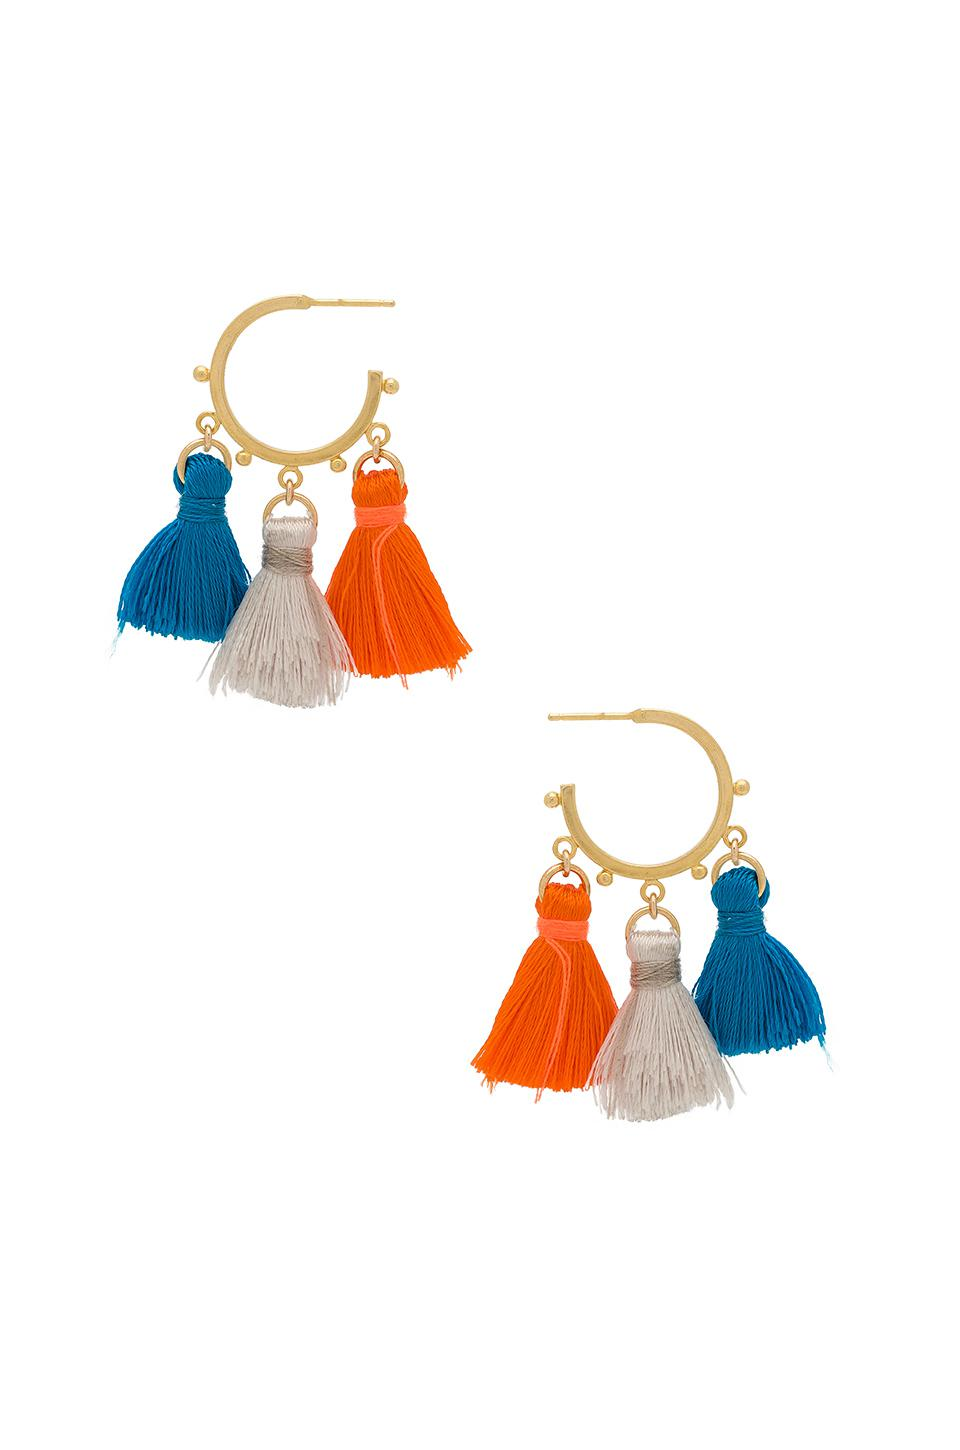 gold rajasthani at emporium image earrings harbour products am in